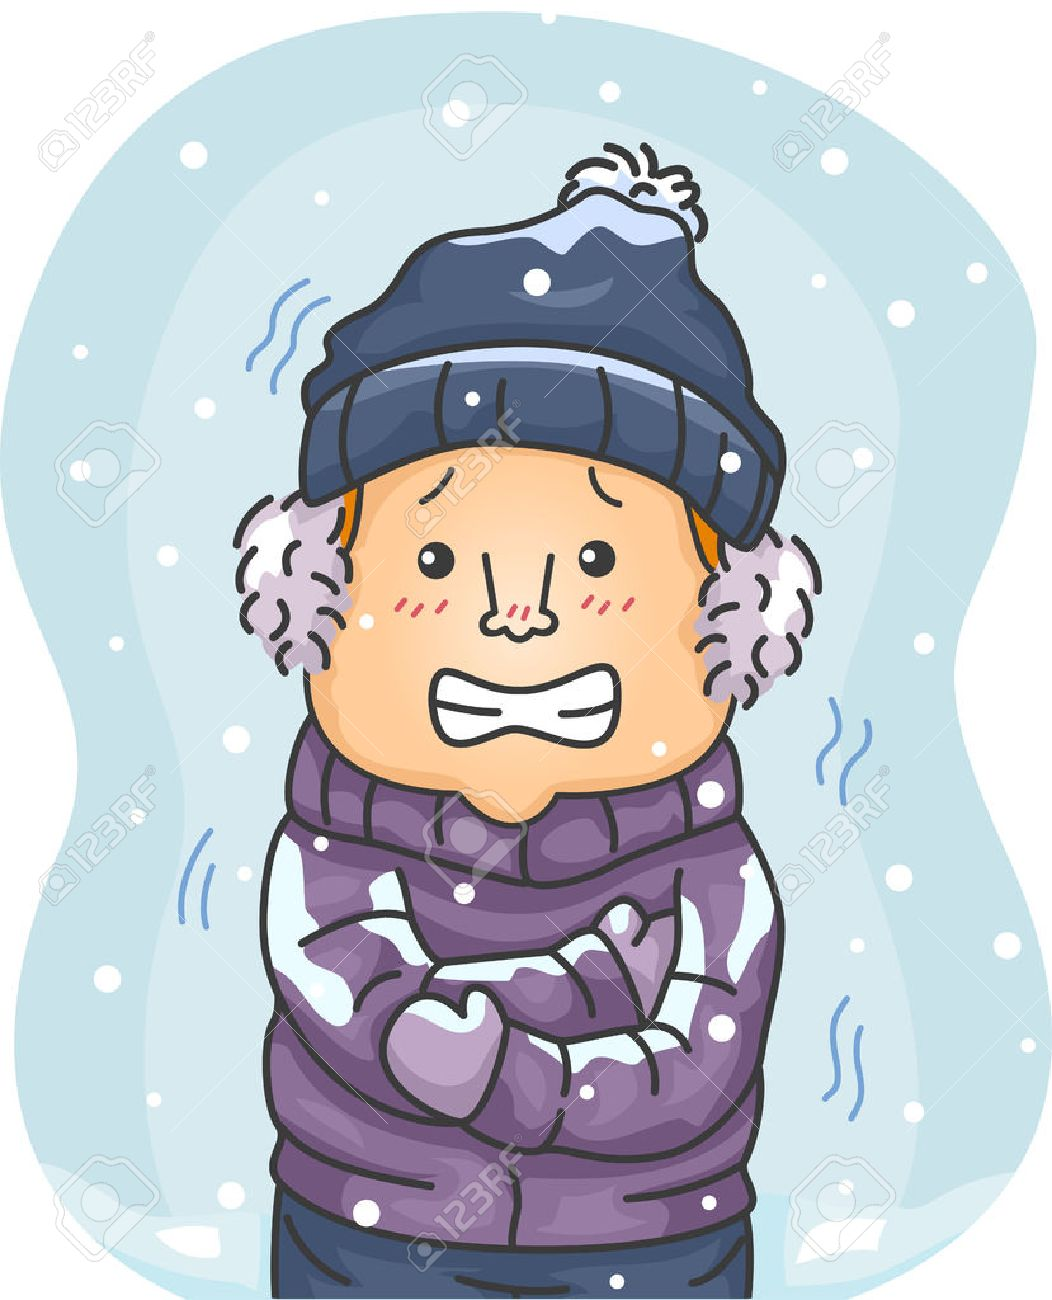 Illustration of a Man in Winter Clothes Shivering Hard Because of the Cold - 30833353